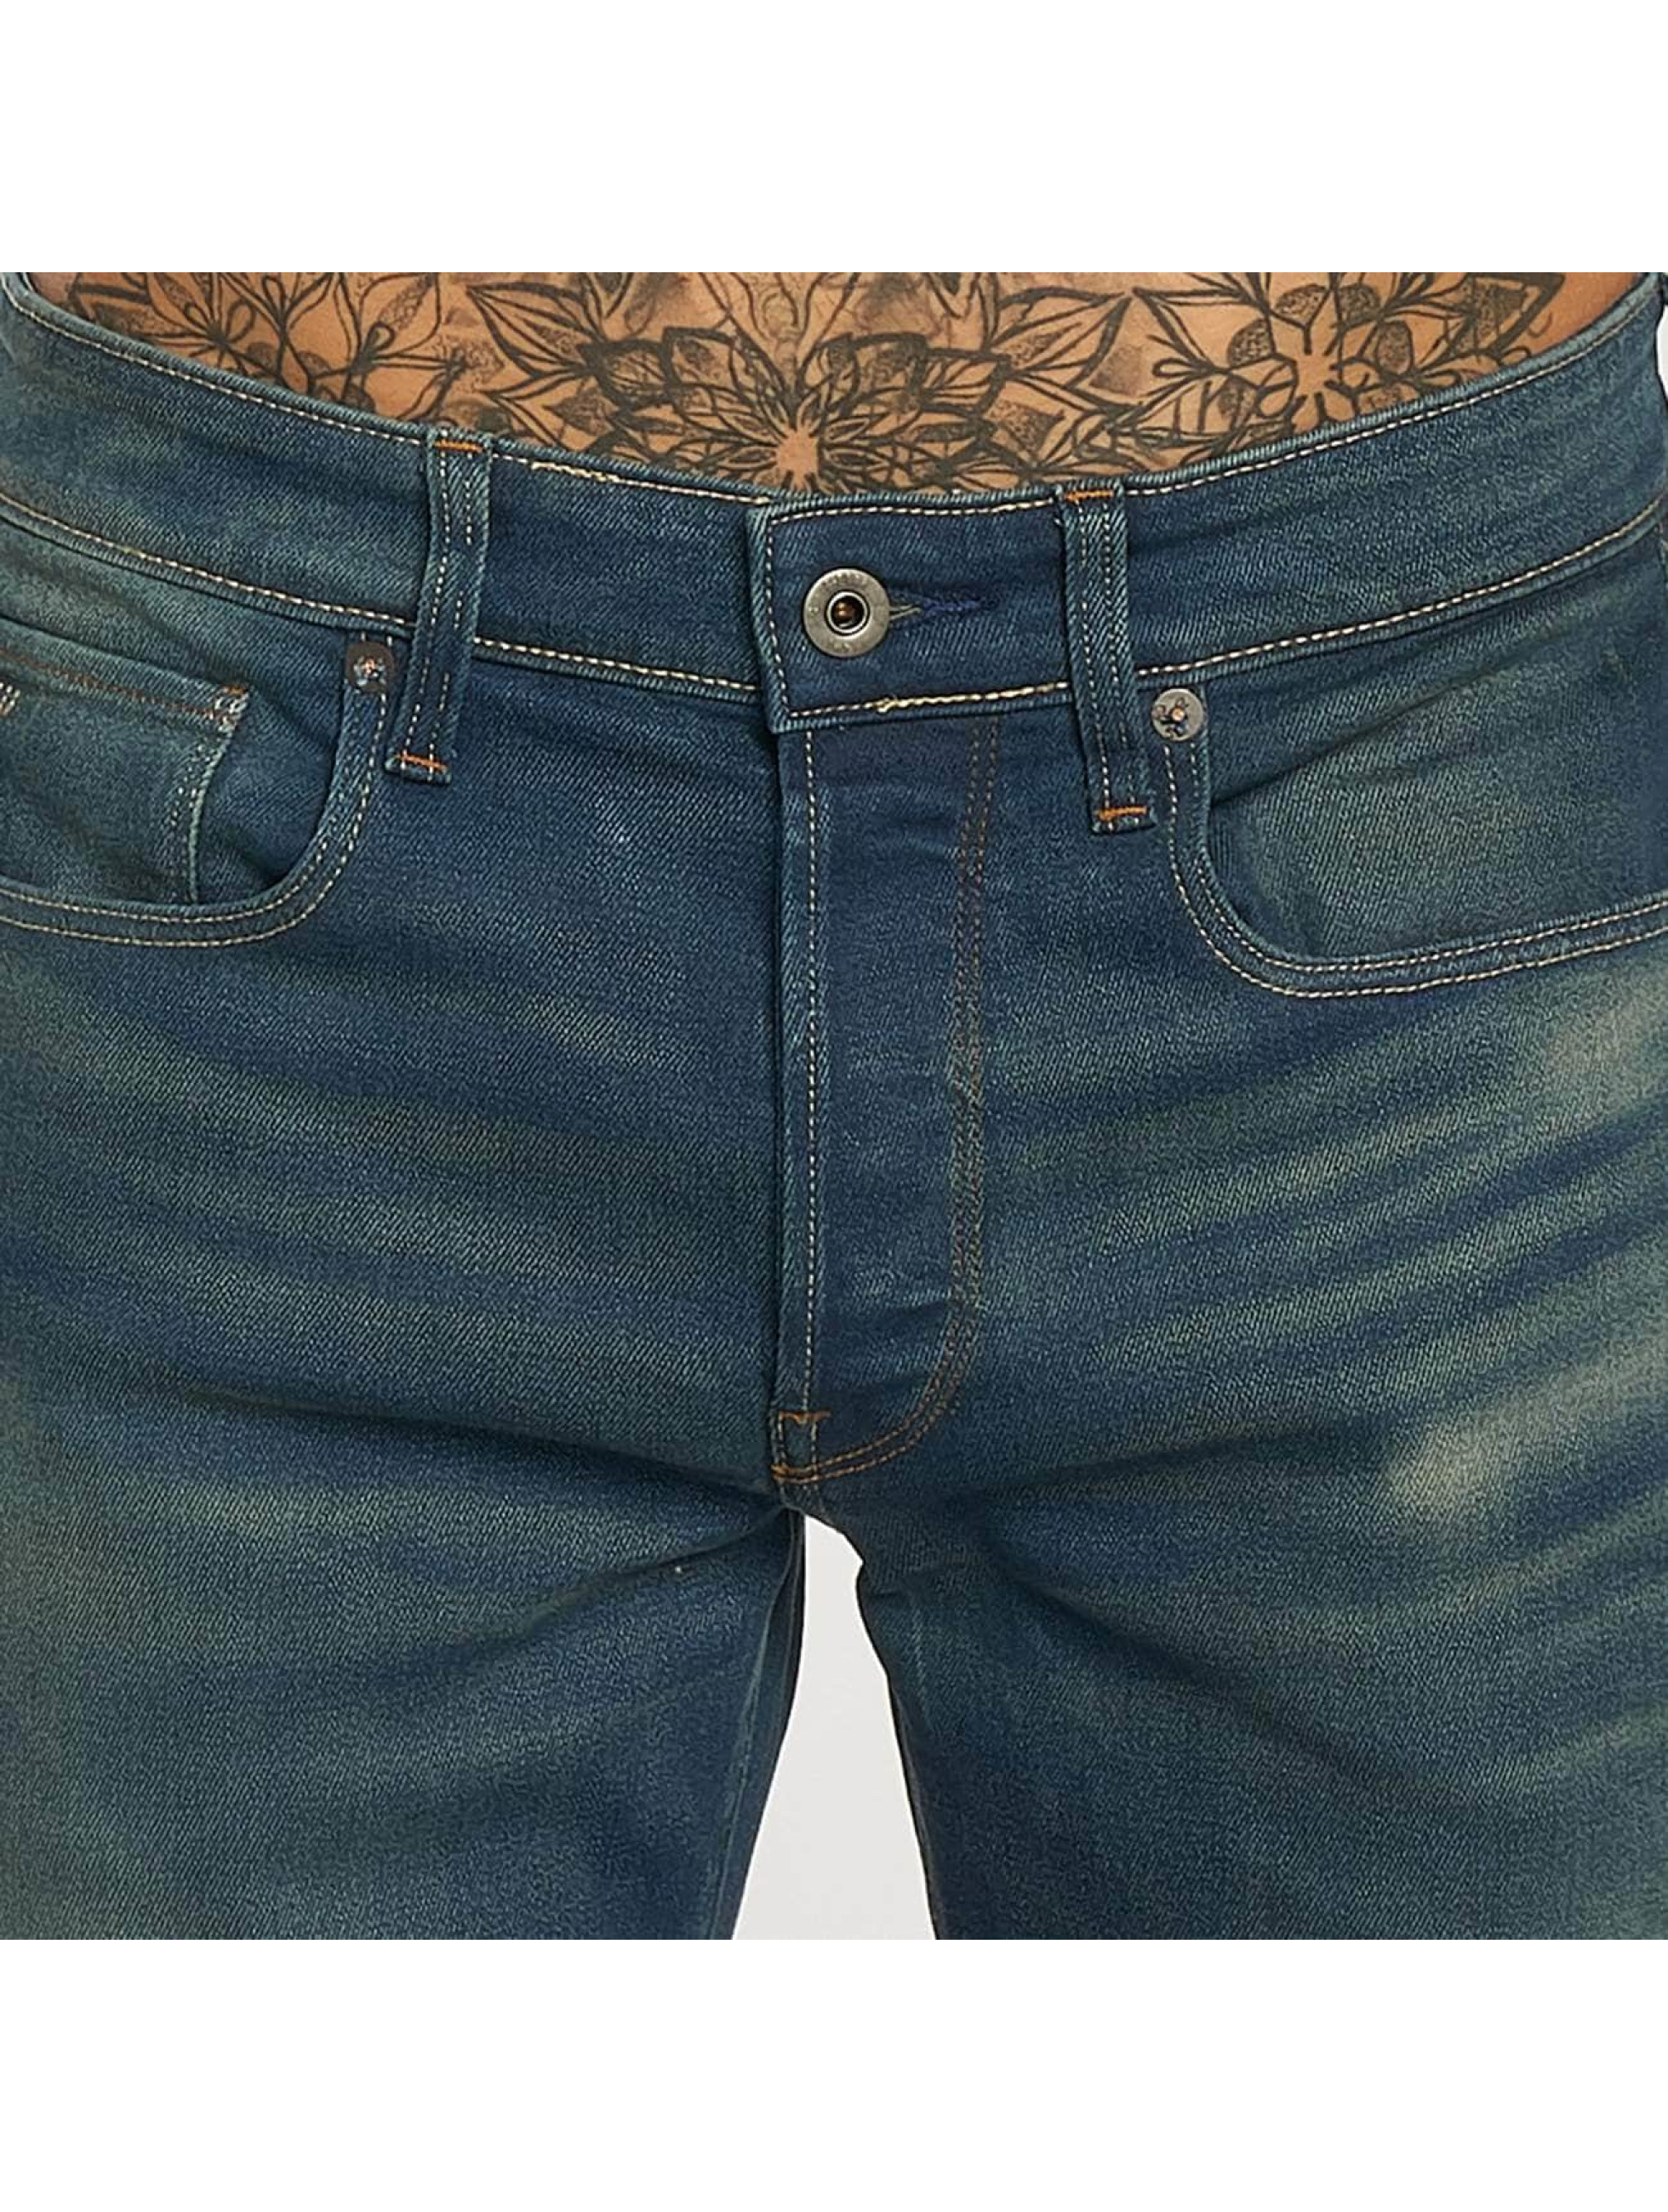 G-Star Loose Fit Jeans 3301 Loose blau